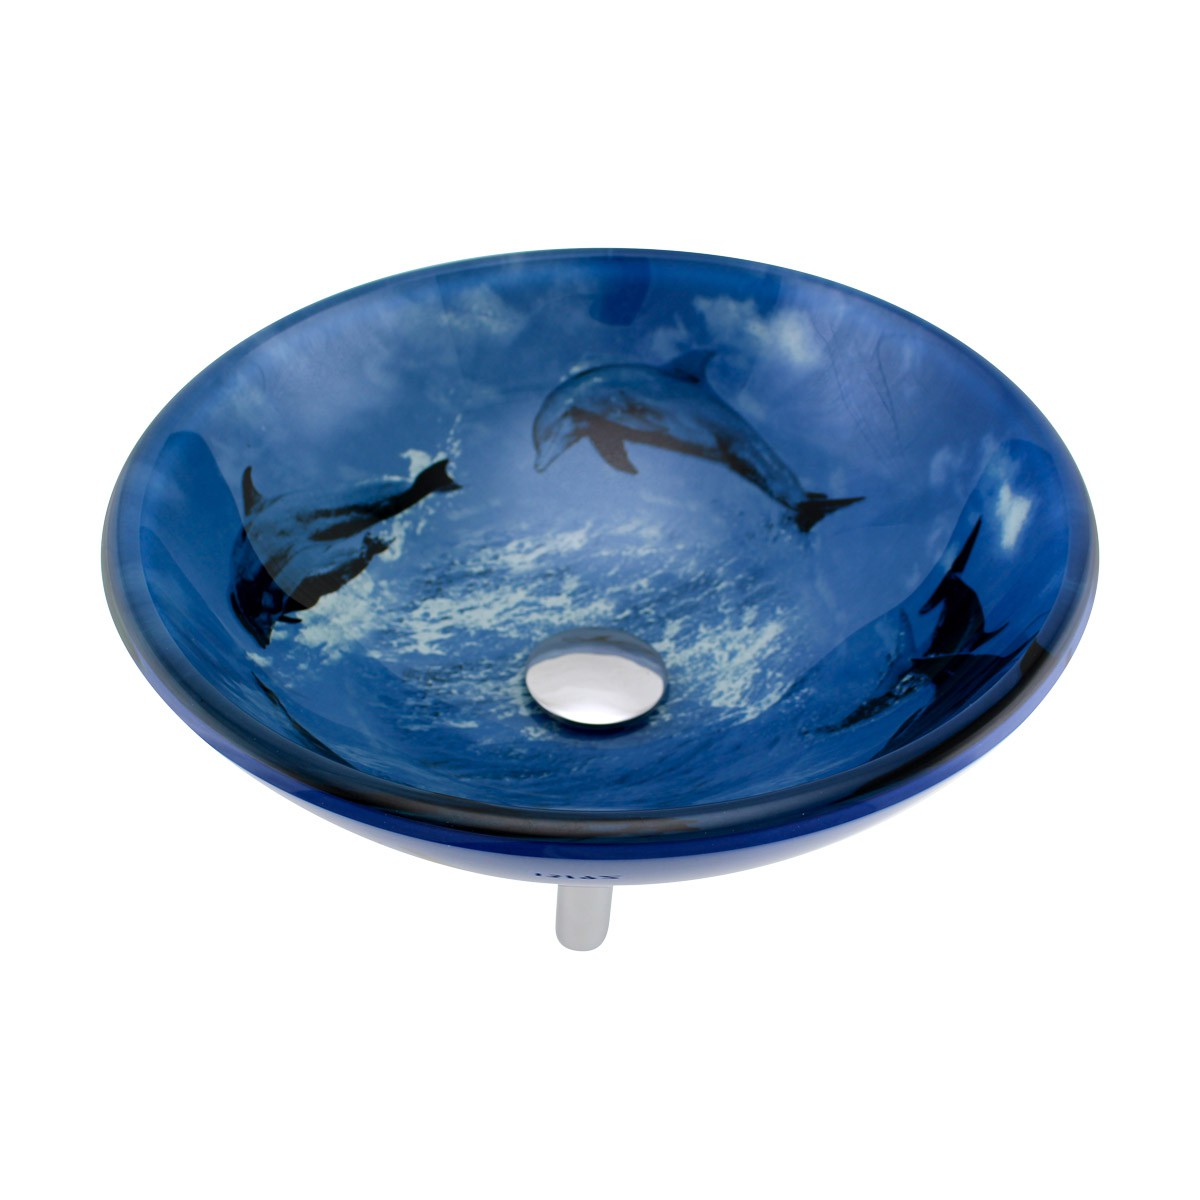 Sink Glass : Double Layer Glass Vessel Sink Bathroom Basin Blue Dolphin